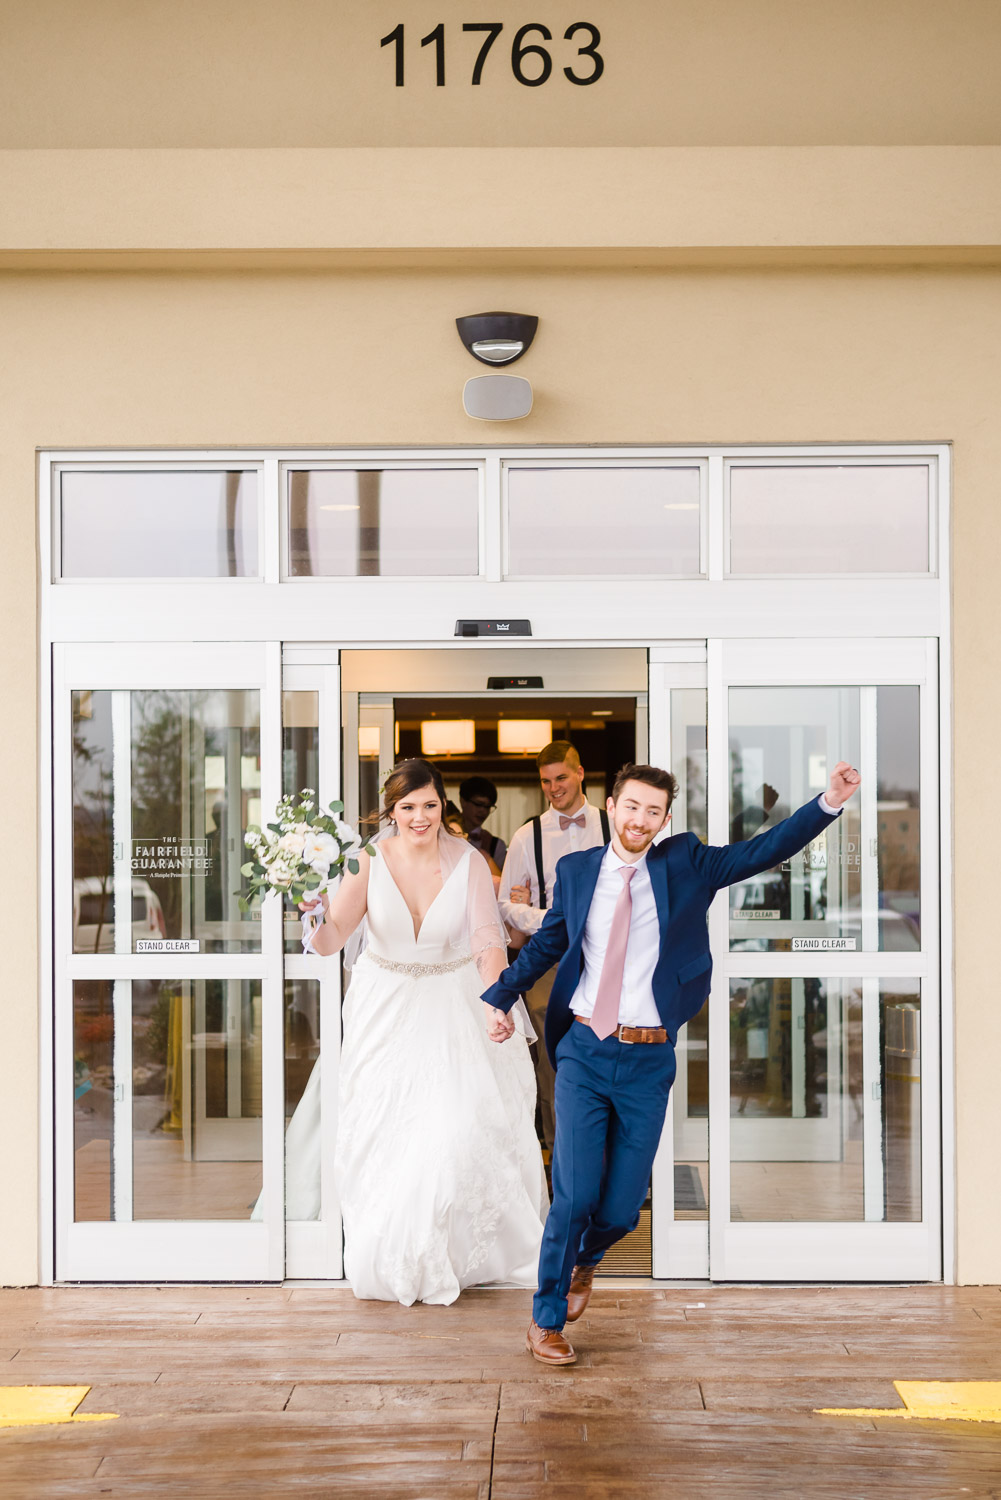 bride and groom running out of the door at the Fairfield Inn on Campbell station rd in Knoxville